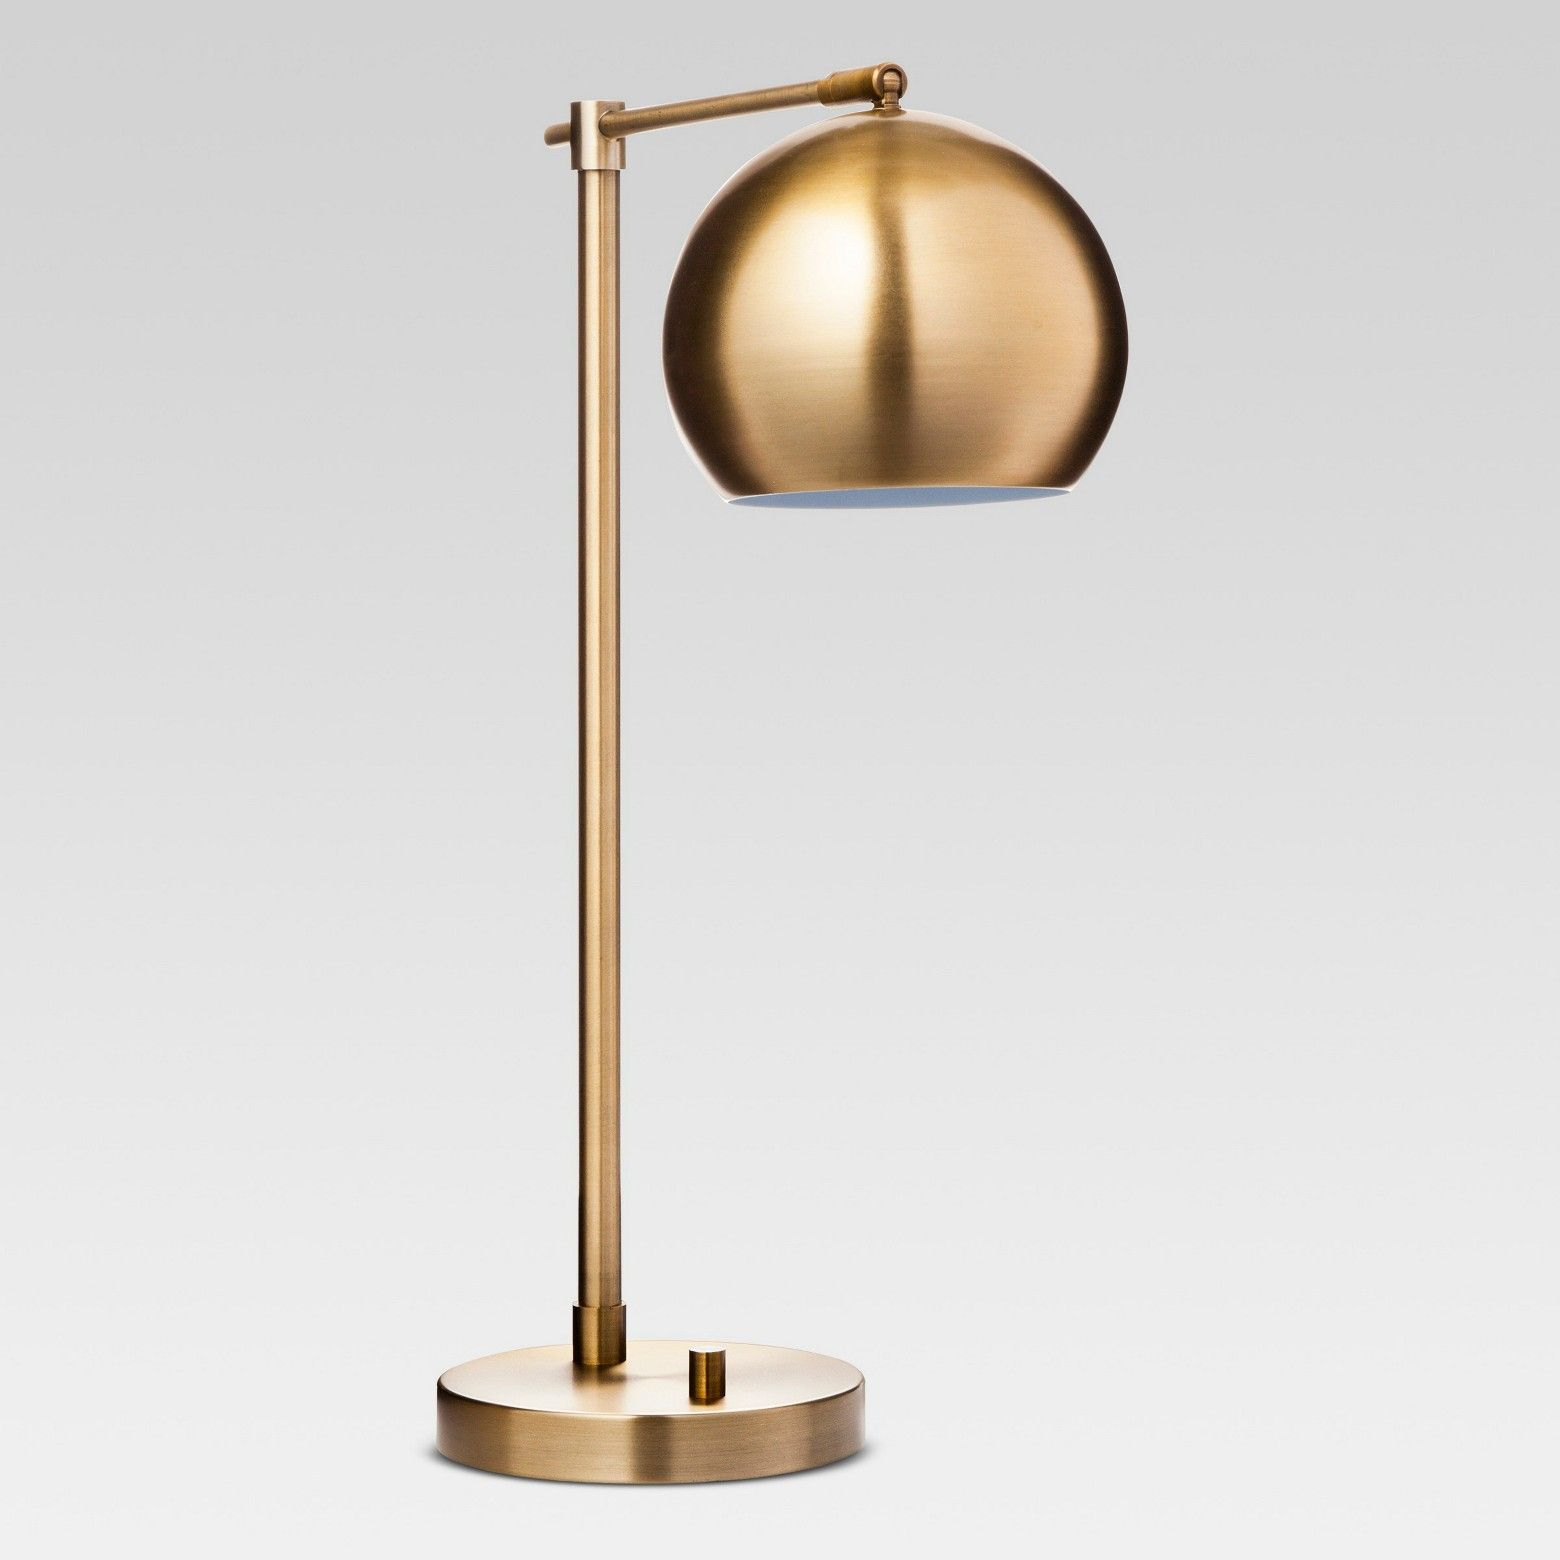 home target arm lamps two new swing impressive gold staples usb port outlets desk clamp walmart hotel lamp with sunlight bankers lighting